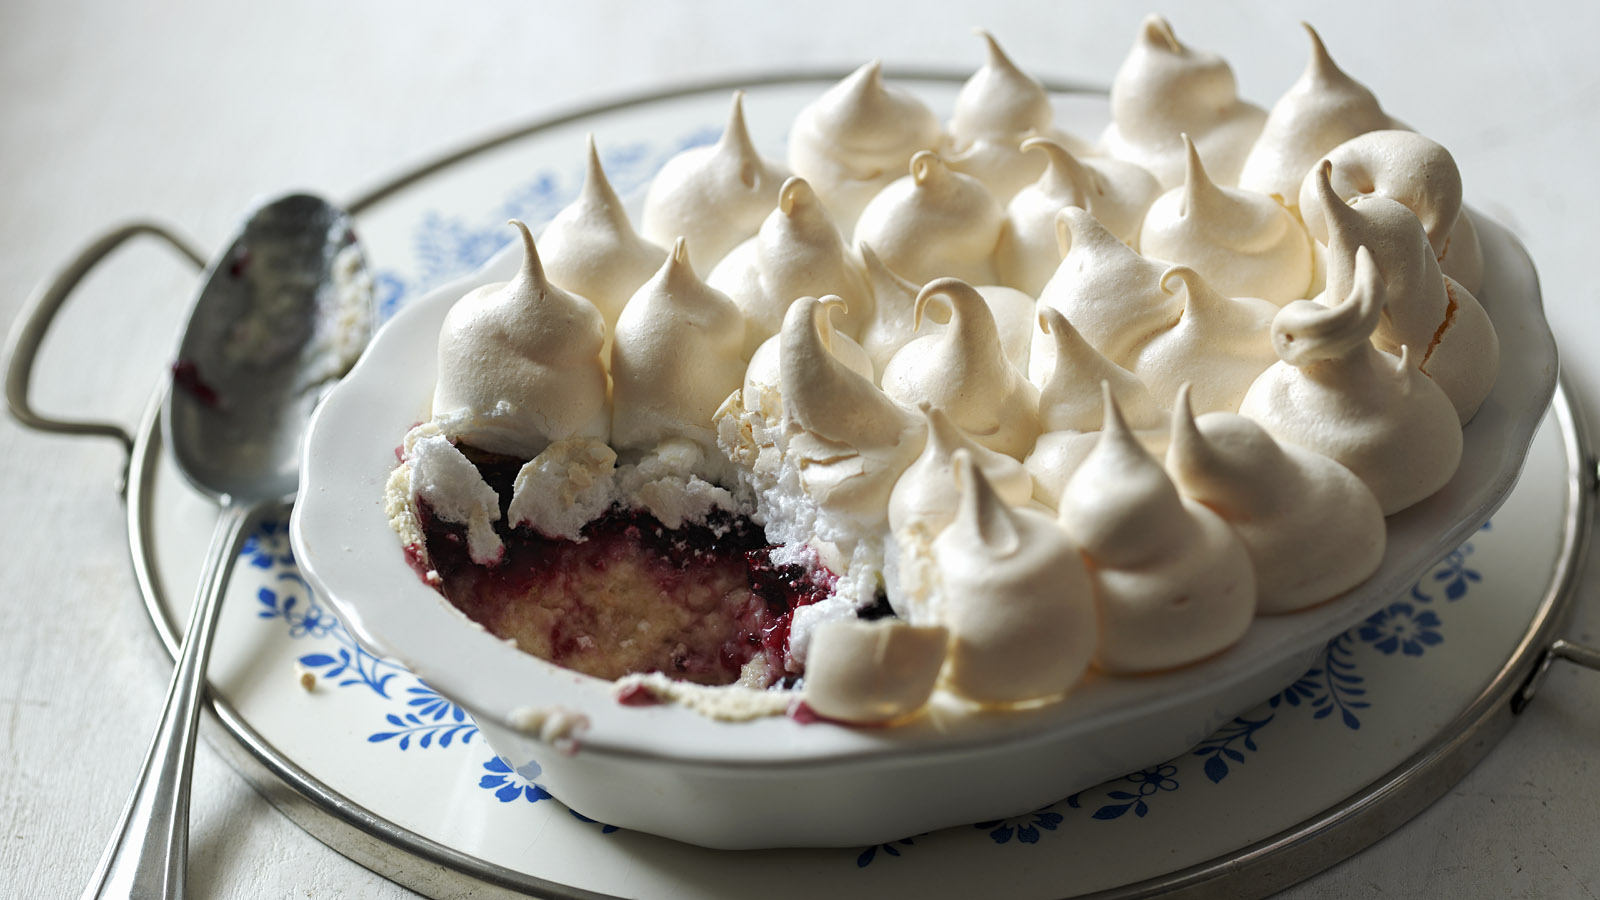 How to Make Queen of Puddings forecast